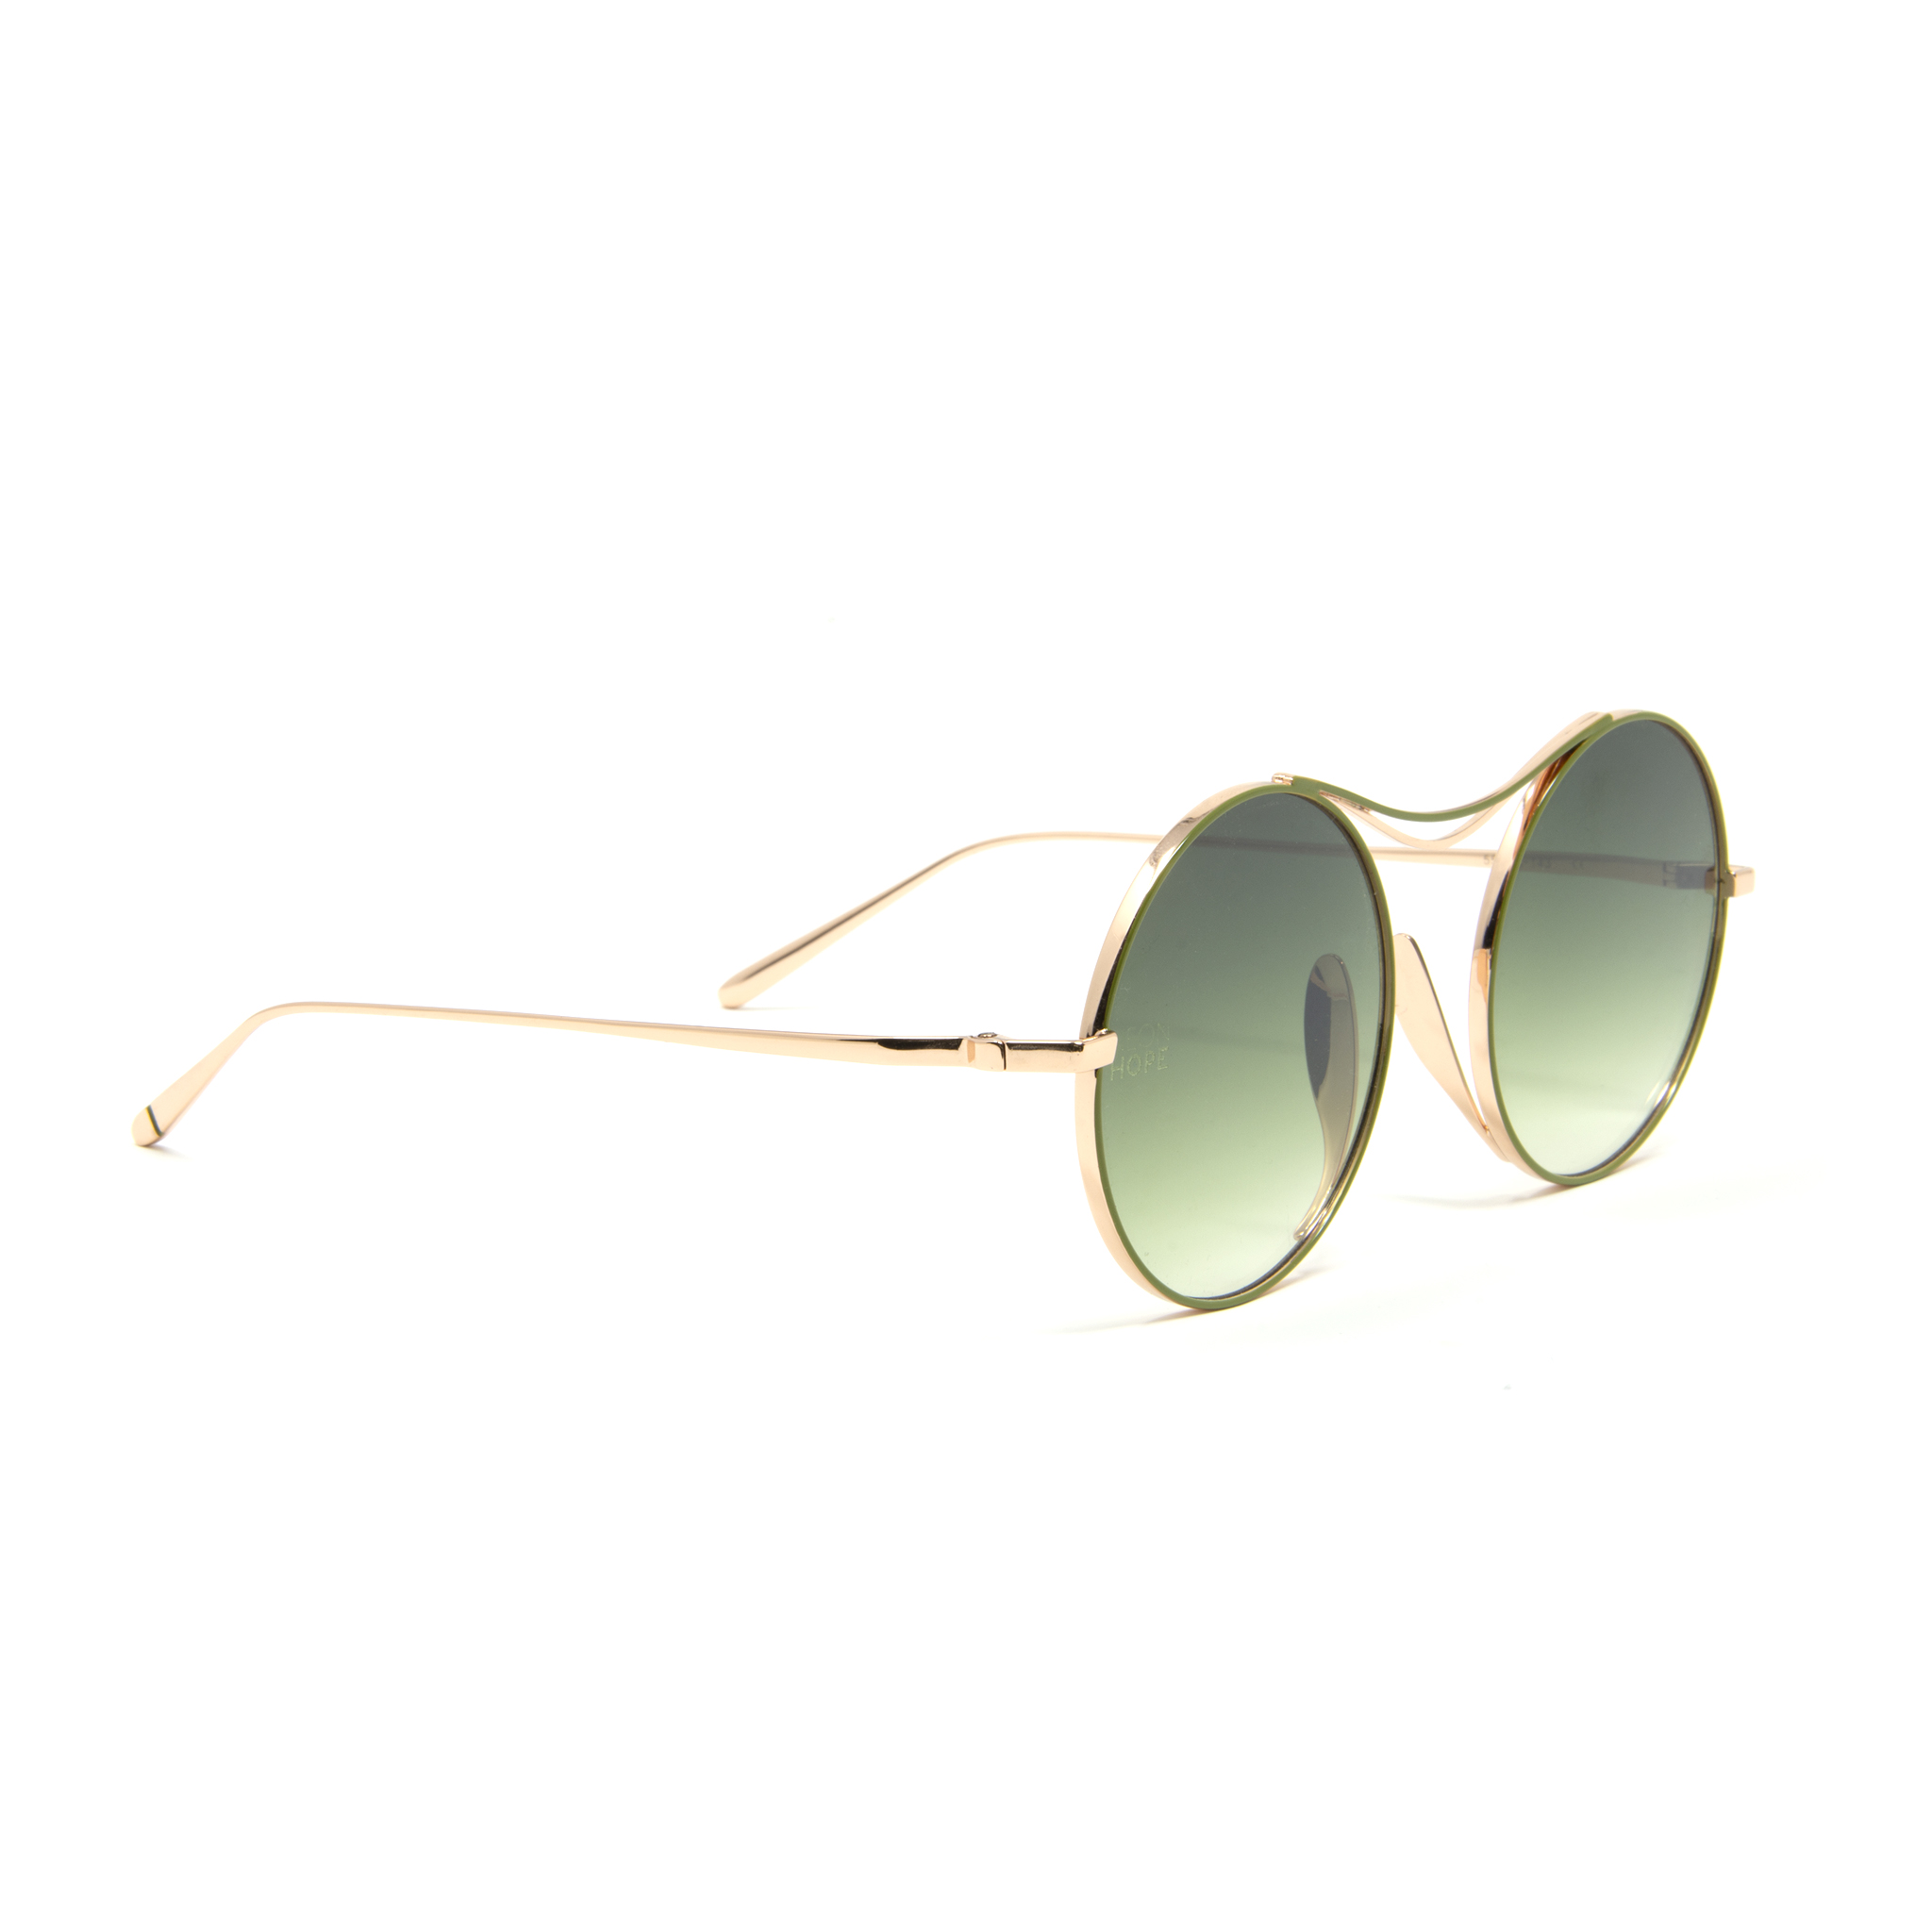 Sulis - Olive Green / Rose Gold (limited edition) by Neon Hope on curated-crowd.com